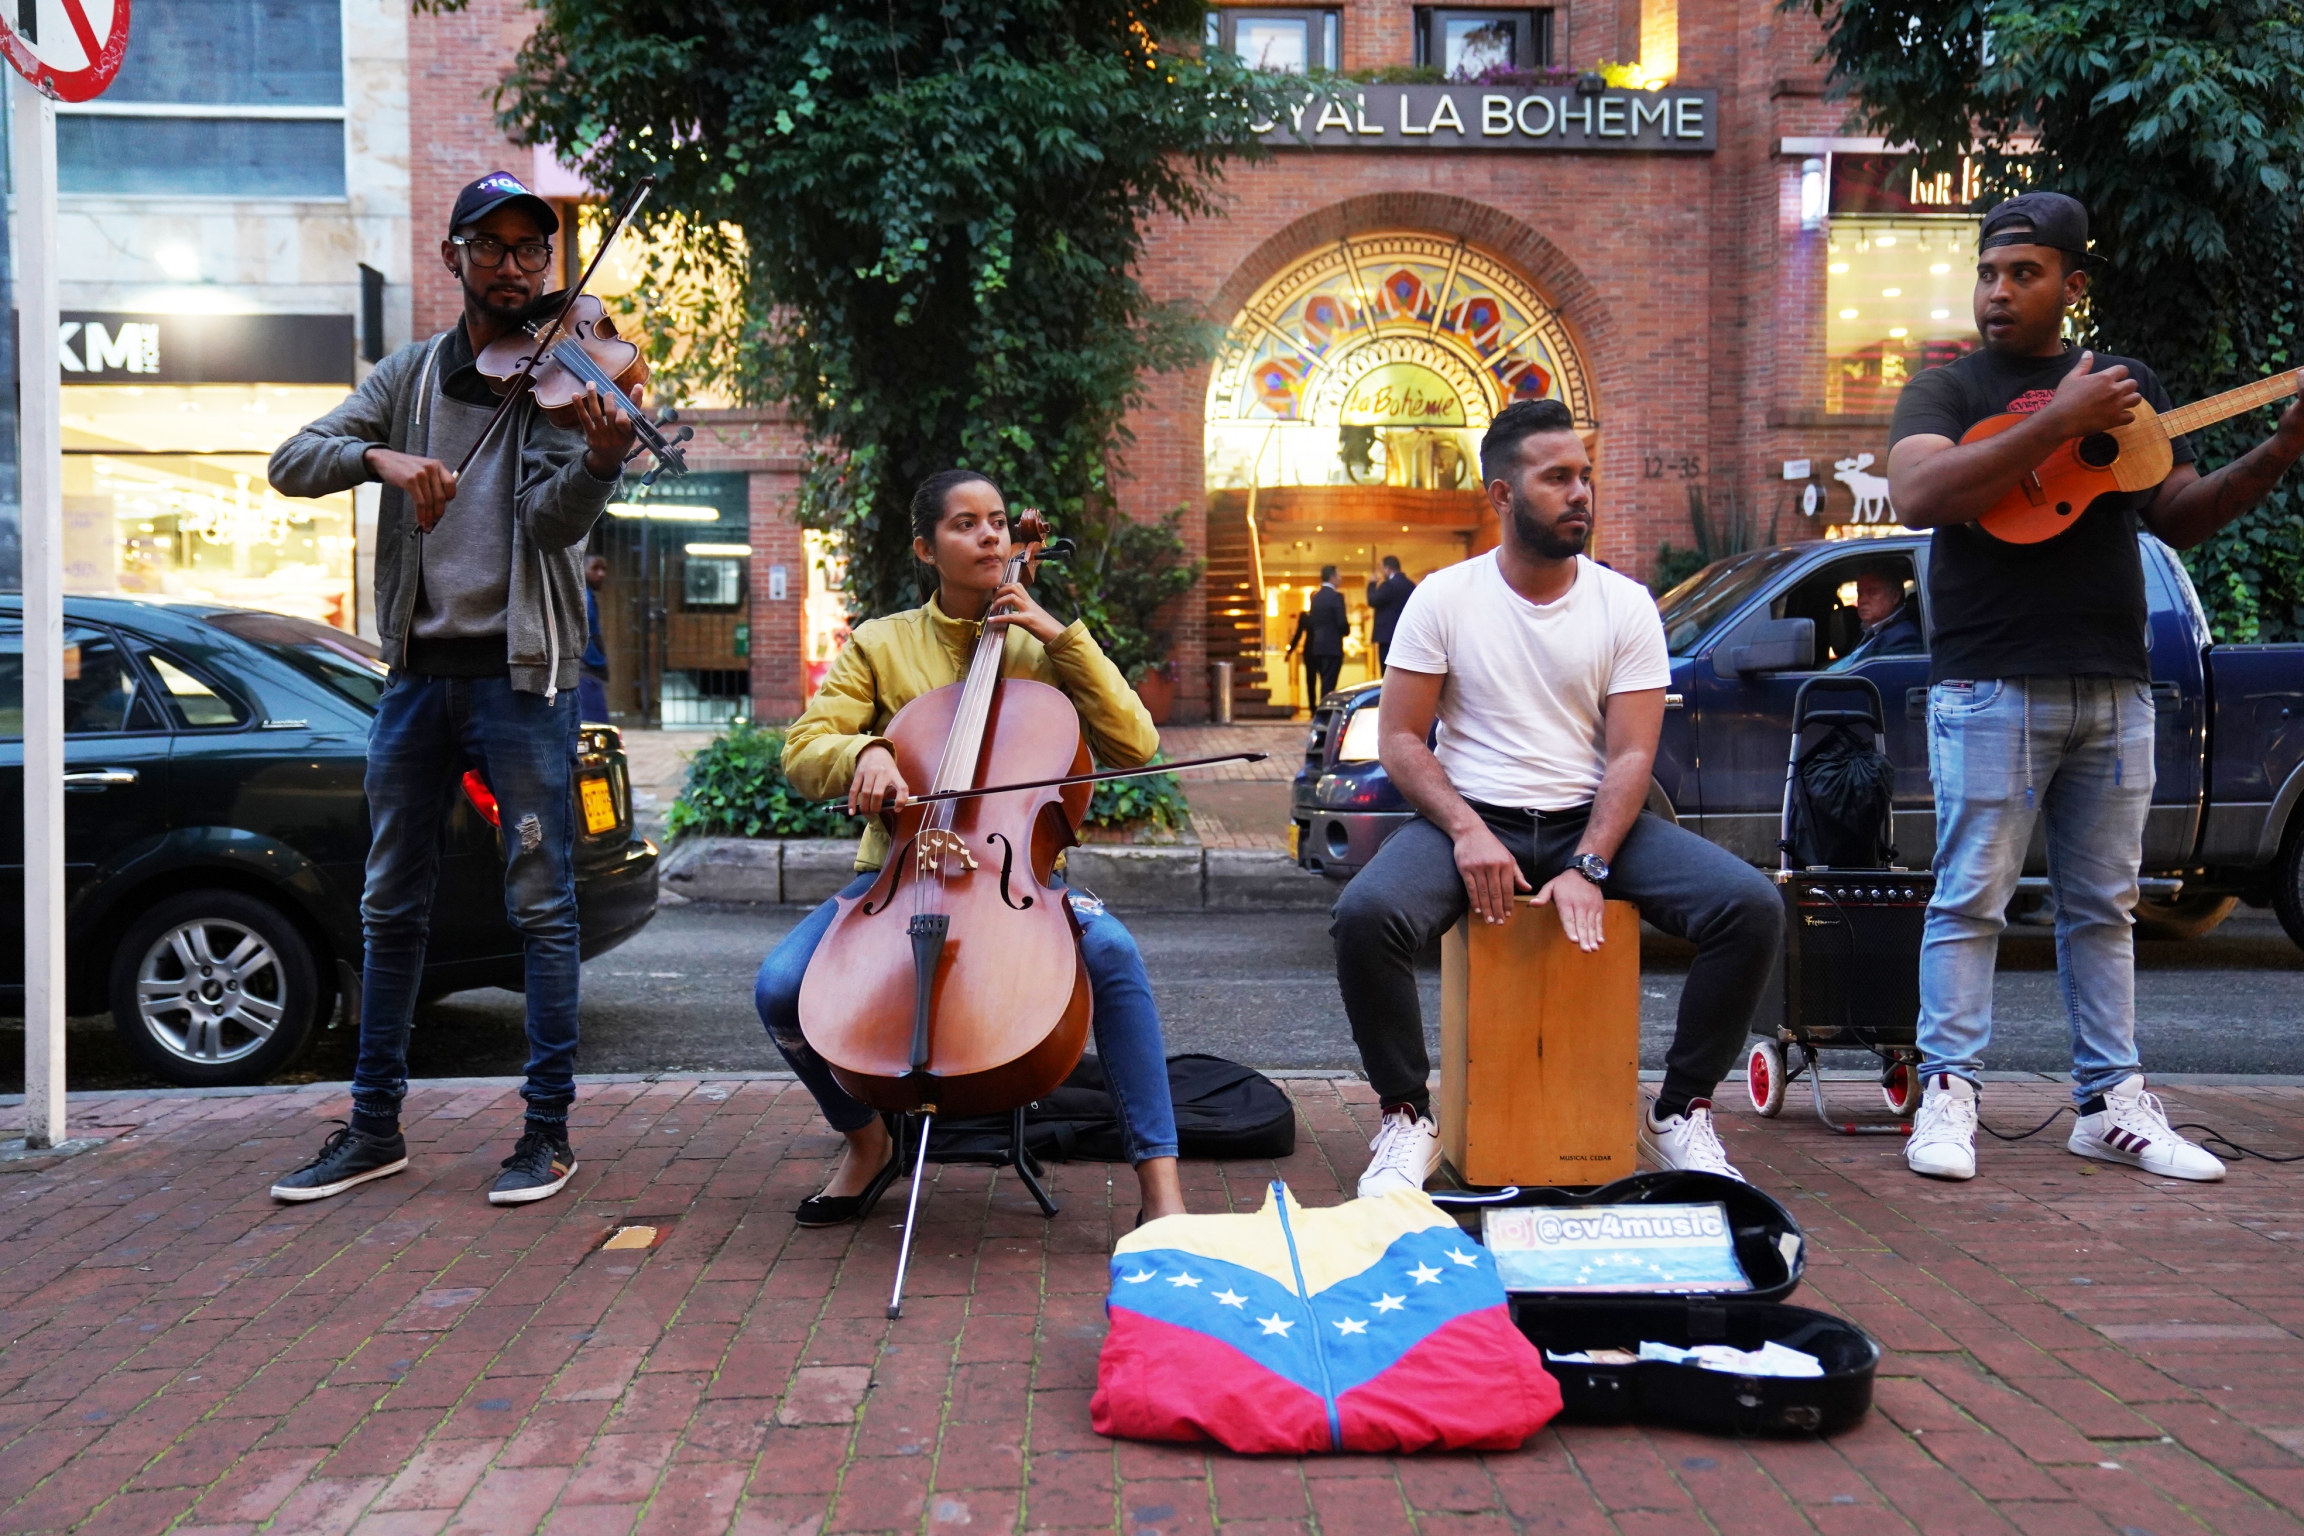 A group of musicians play music on the street.